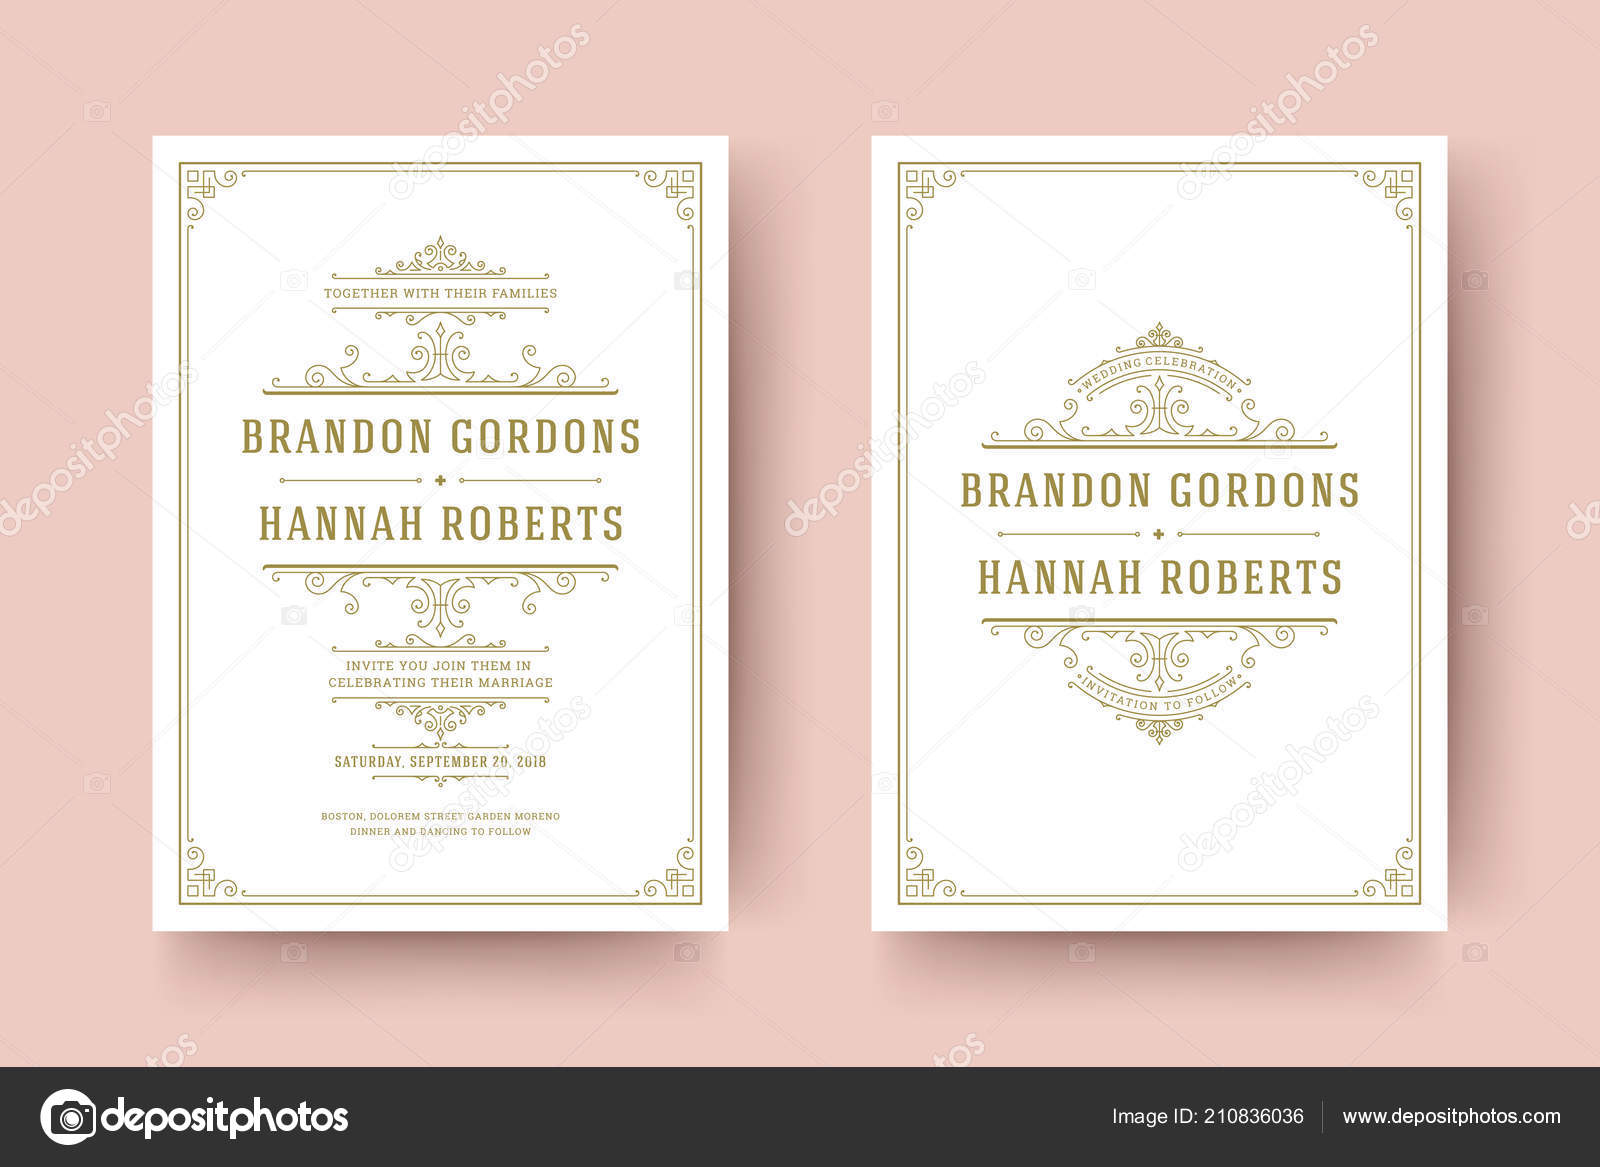 wedding save the date invitation cards flourishes ornaments stock